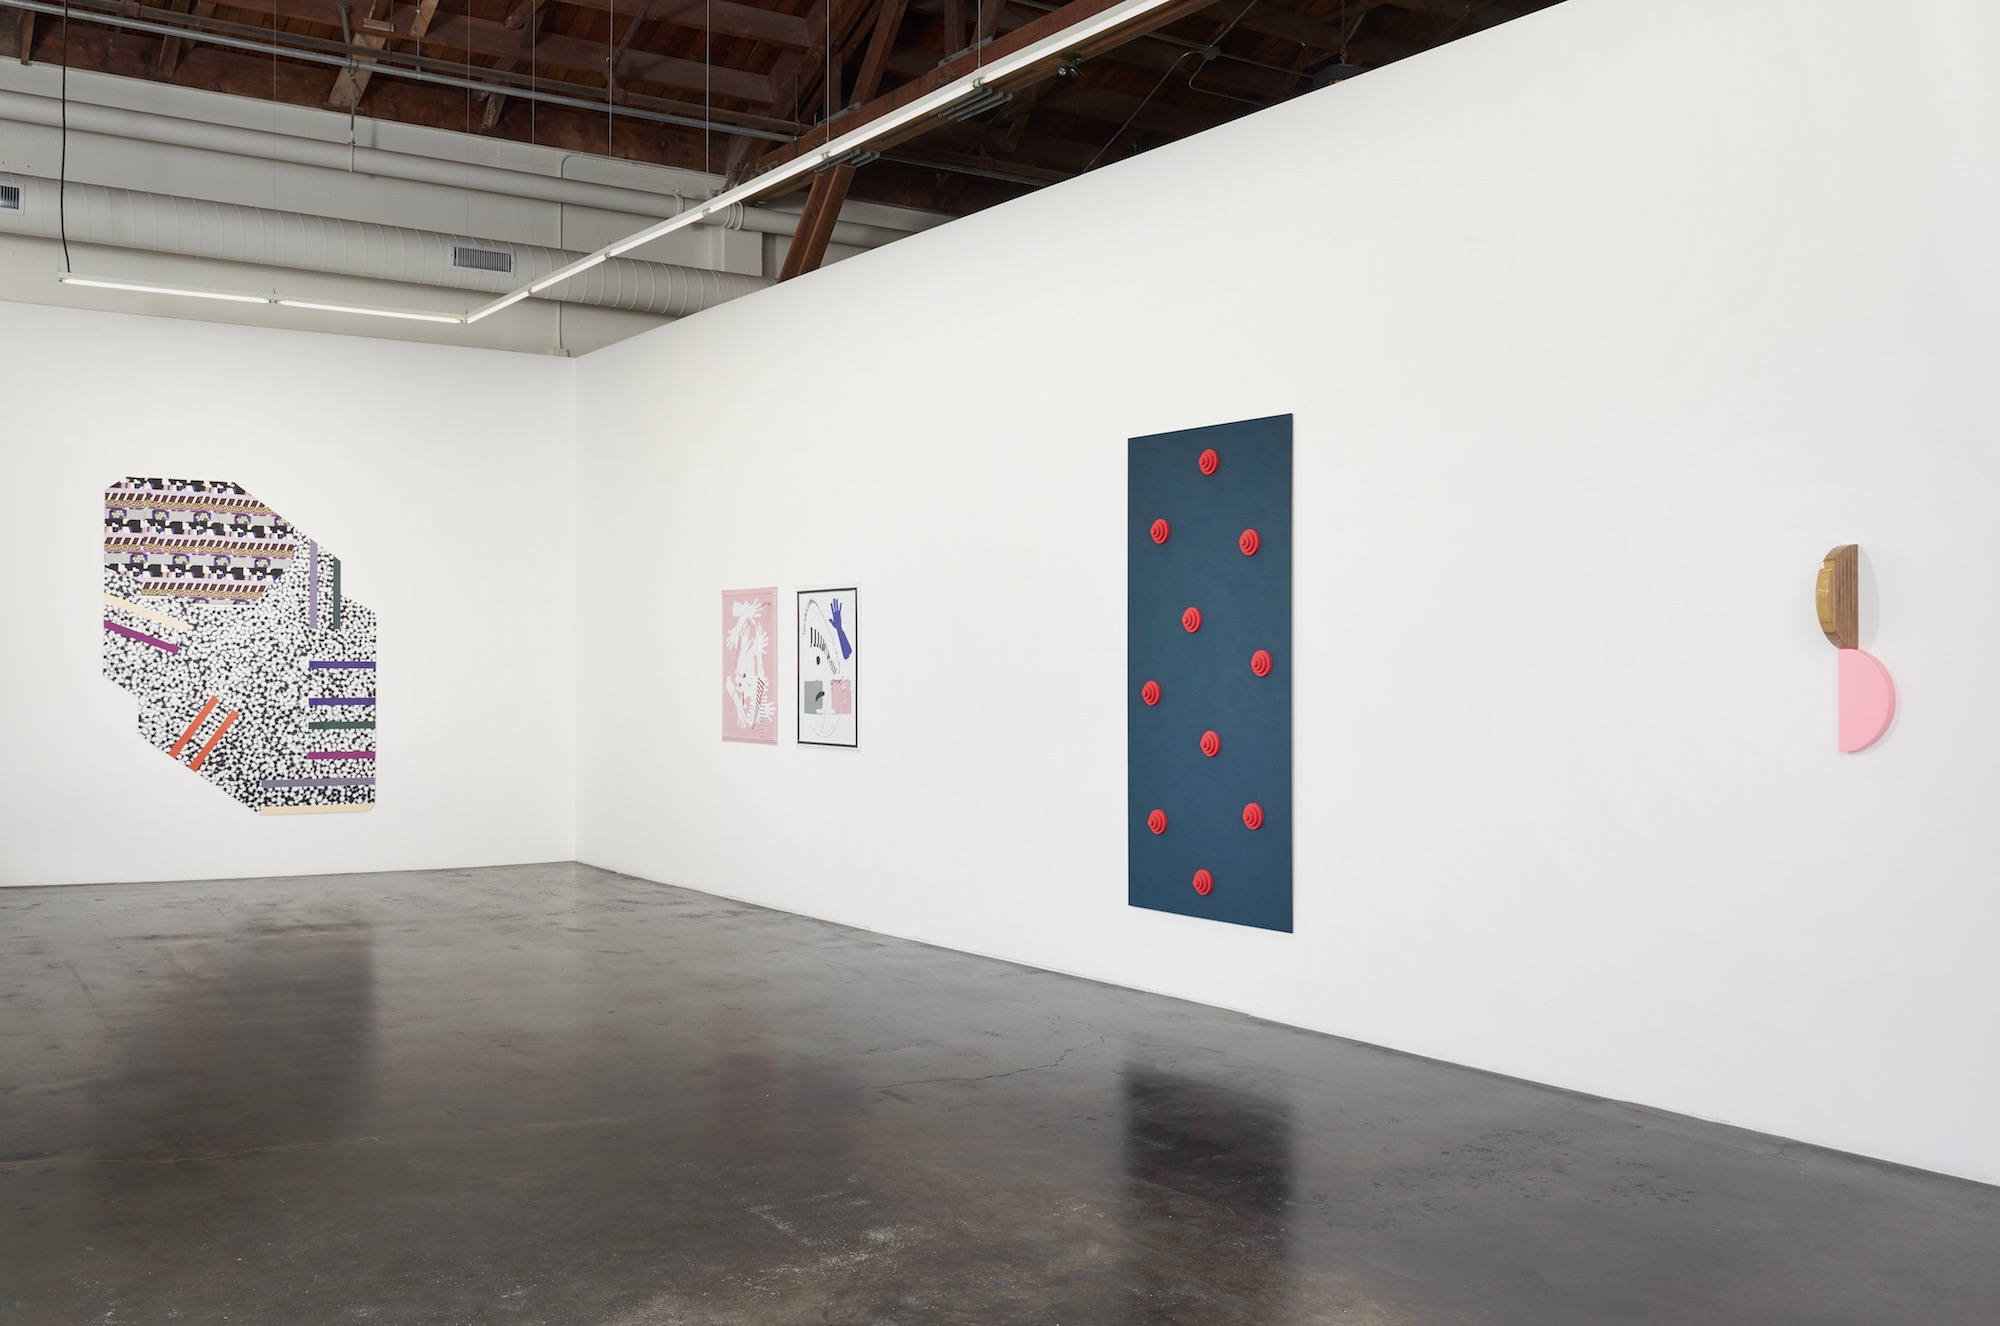 Installation view of 'Twist' at fused, showing works by Ruth Root, José León Cerrillo, Lisa Williamson and Ruth Root.  (Courtesy of Jessica Silverman Gallery)